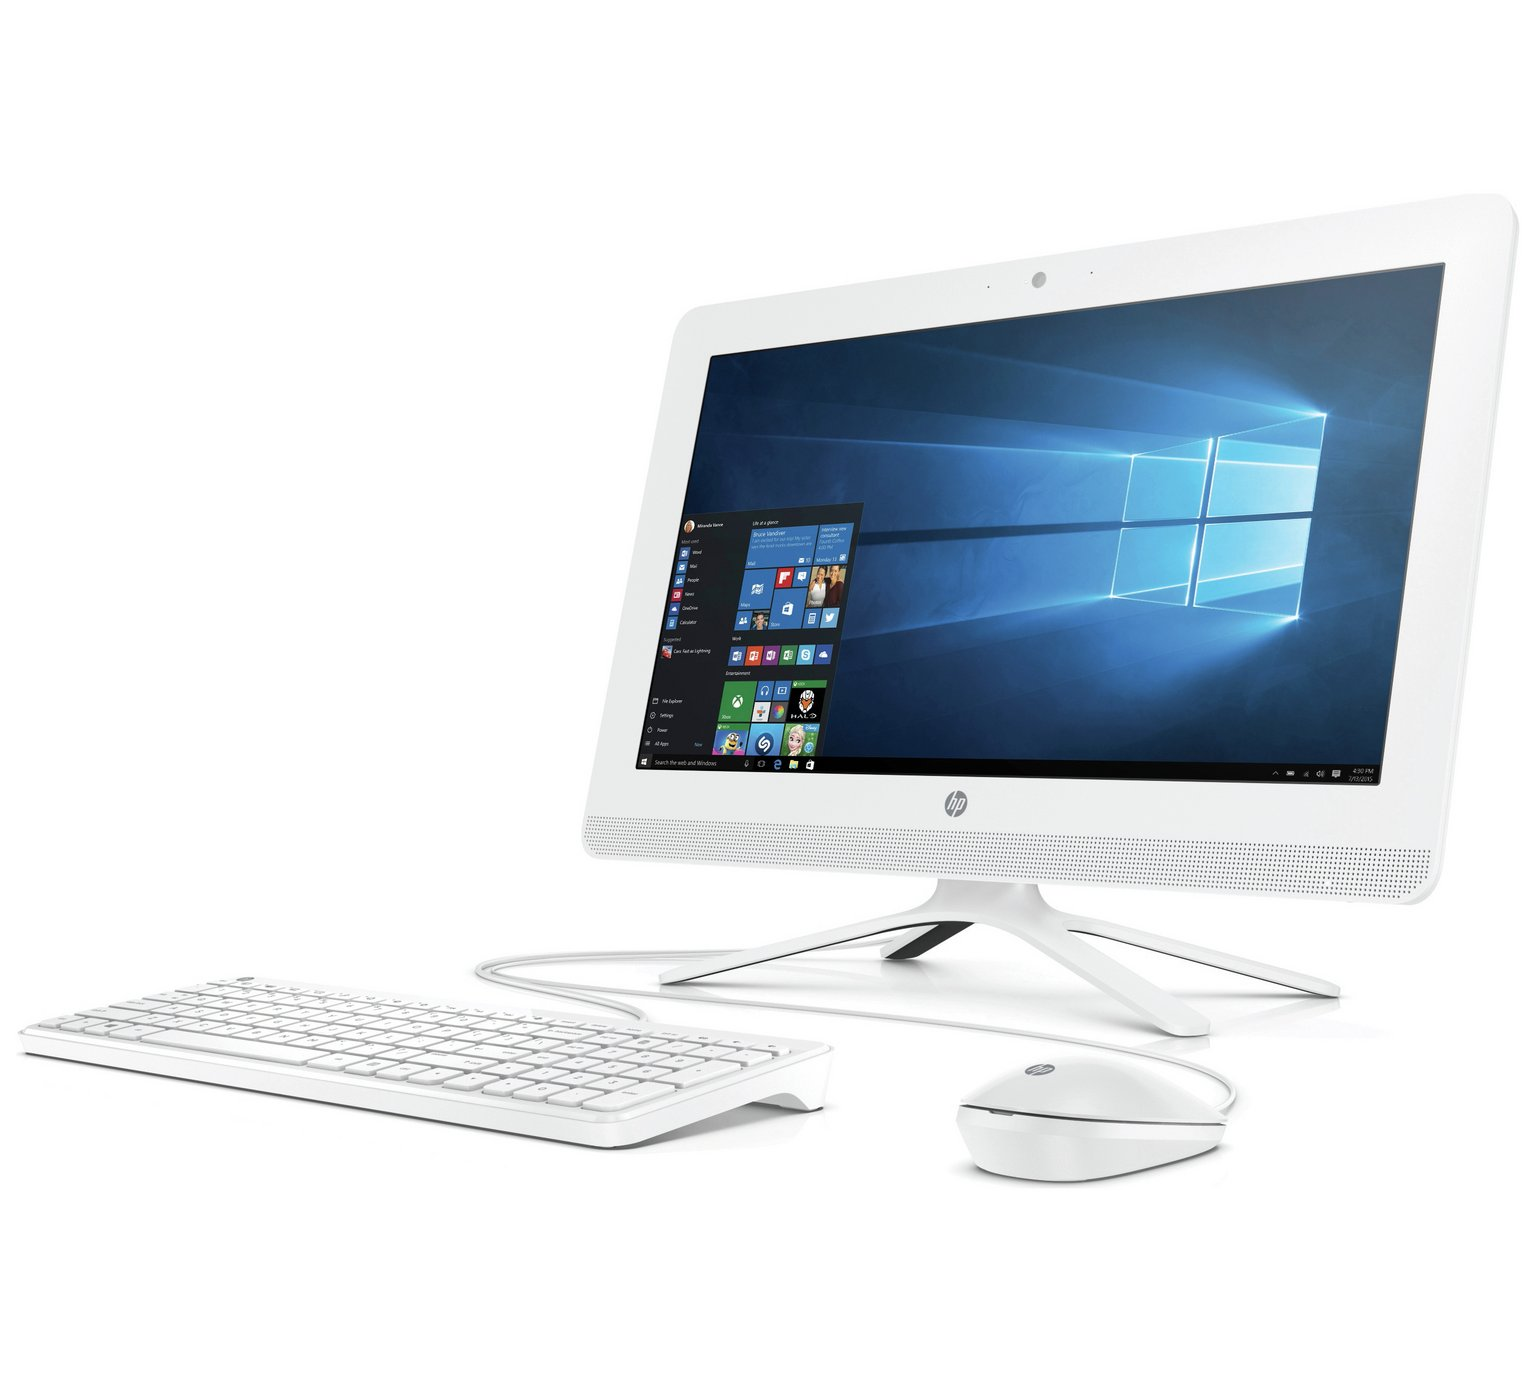 HP Celeron 21.5 Inch Intel Celeron dual core j3060 4GB 1TB All-in-One PC - White